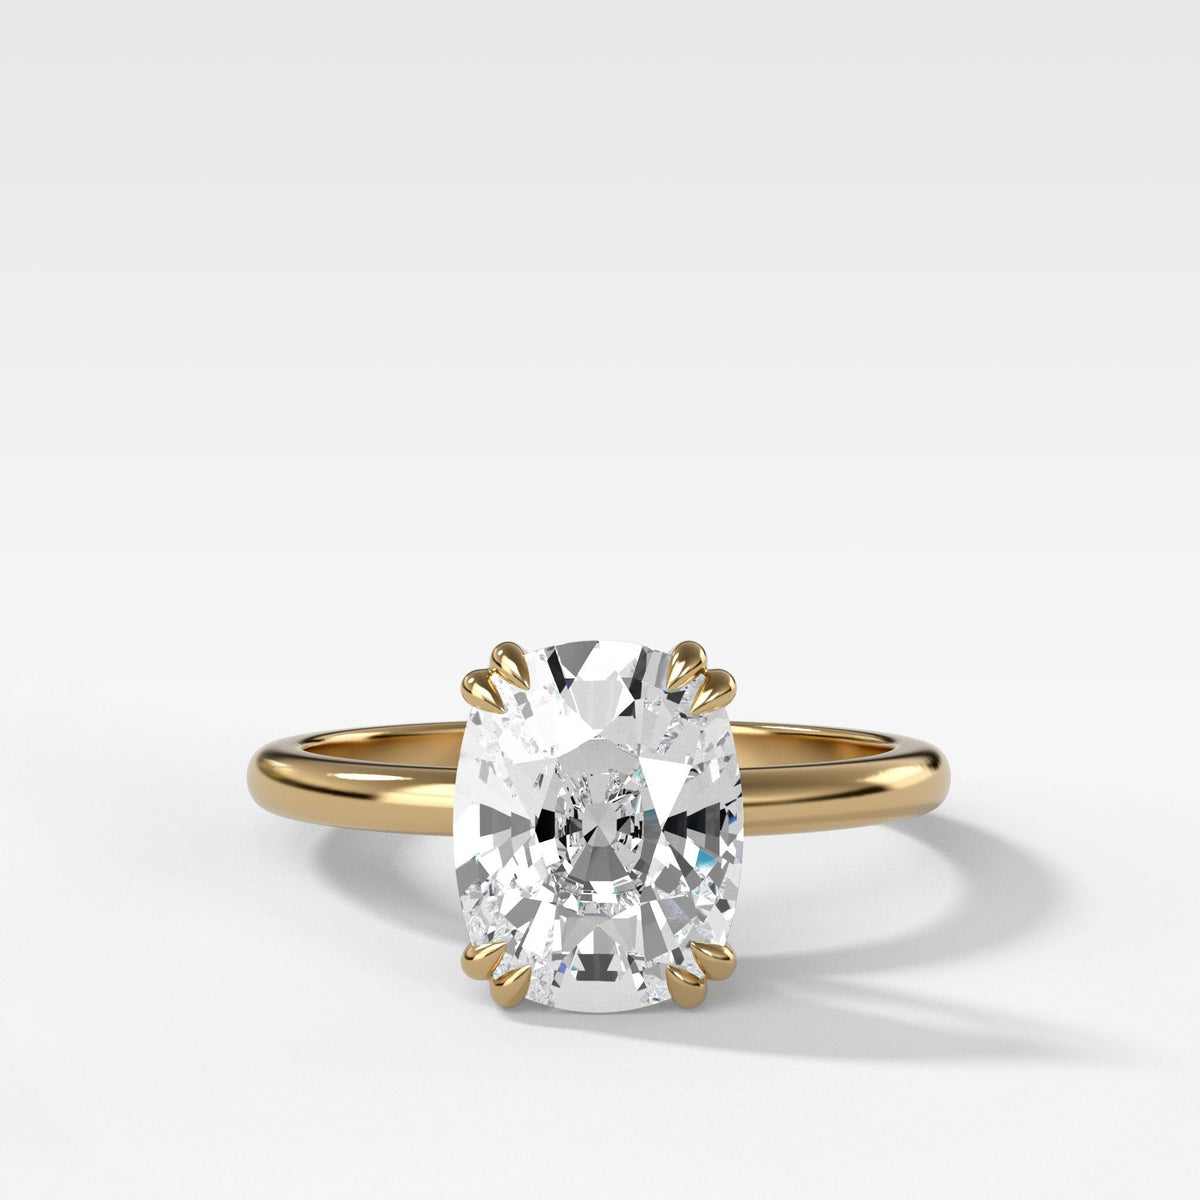 Signature Cathedral Solitaire With Elongated Cushion Cut om Yellow Gold by Good Stone